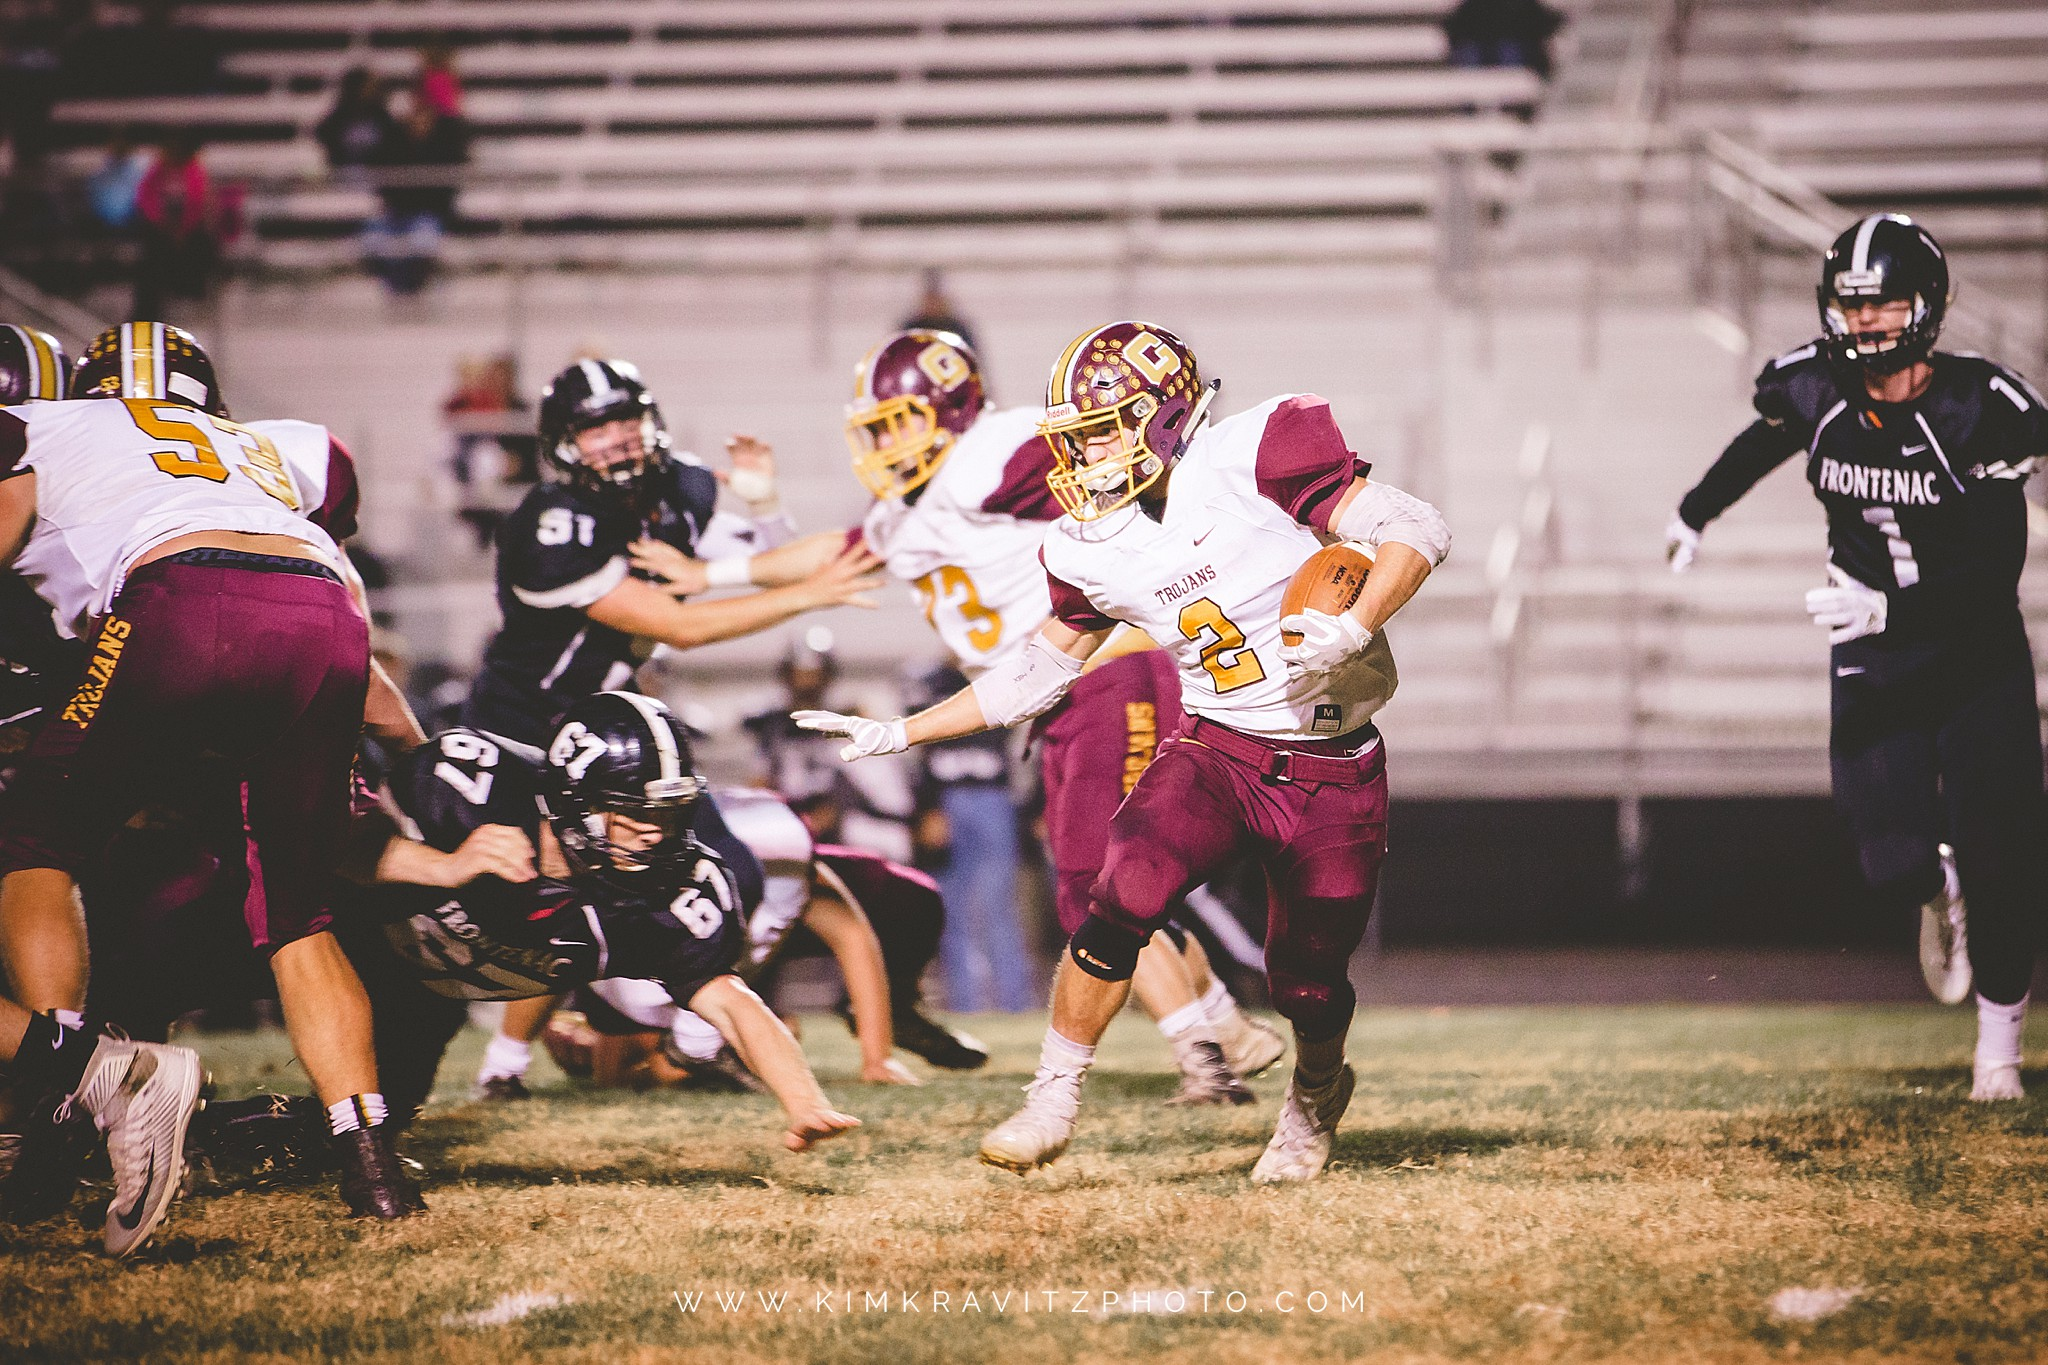 Girard Trojans Frontenac Raiders Kansas High School Football Regionals Kim Kravitz